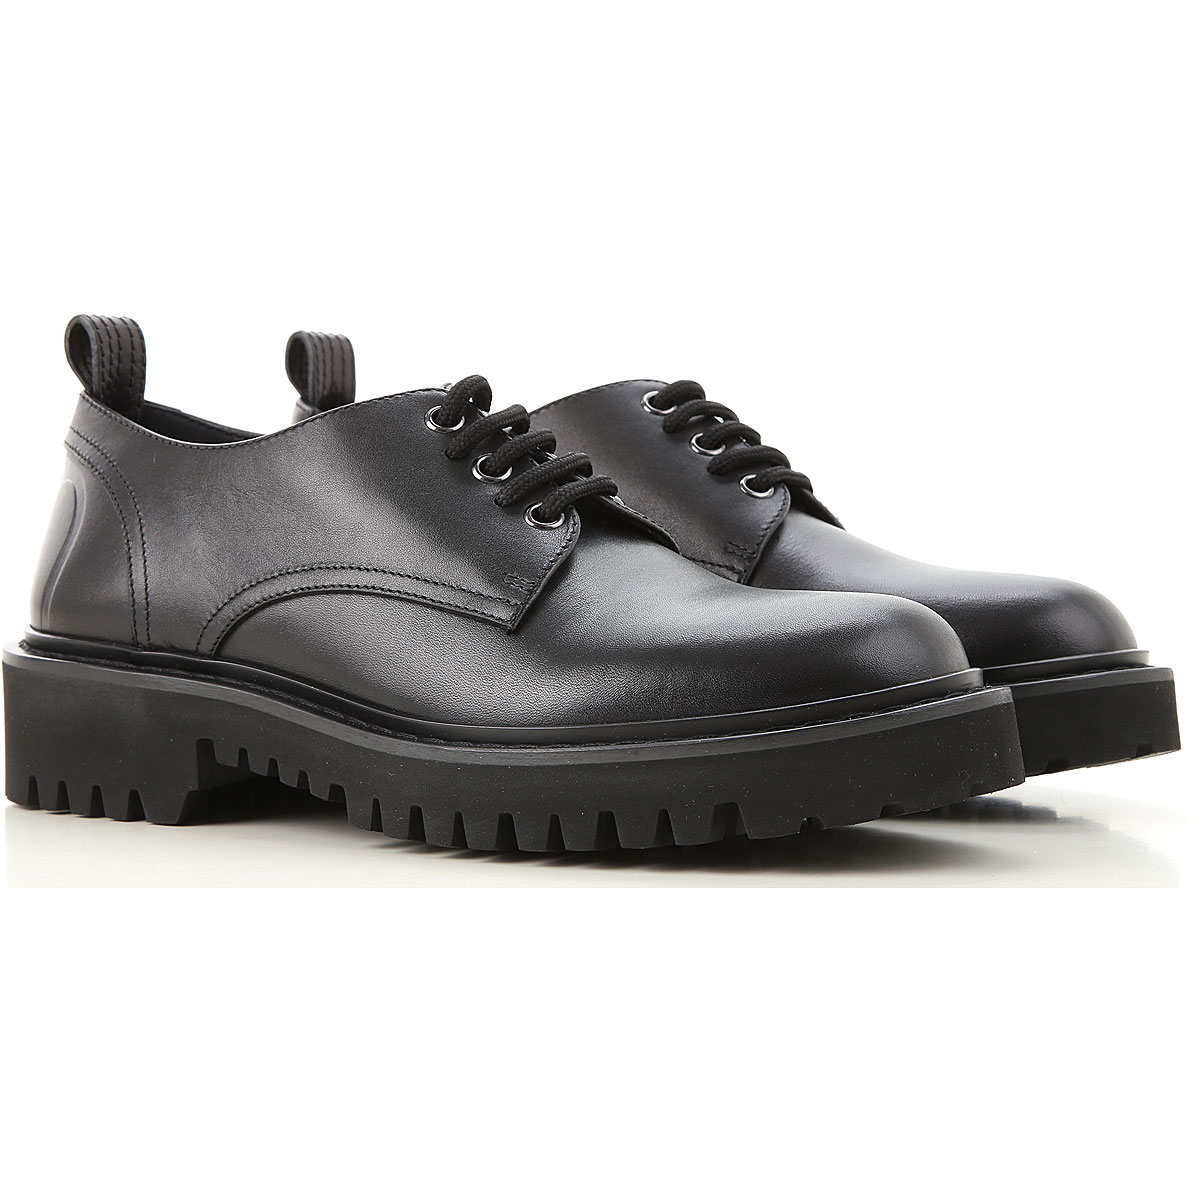 Valentino Garavani Lace Up Shoes for Men Oxfords Derbies and Brogues DK - GOOFASH - Womens LEATHER SHOES